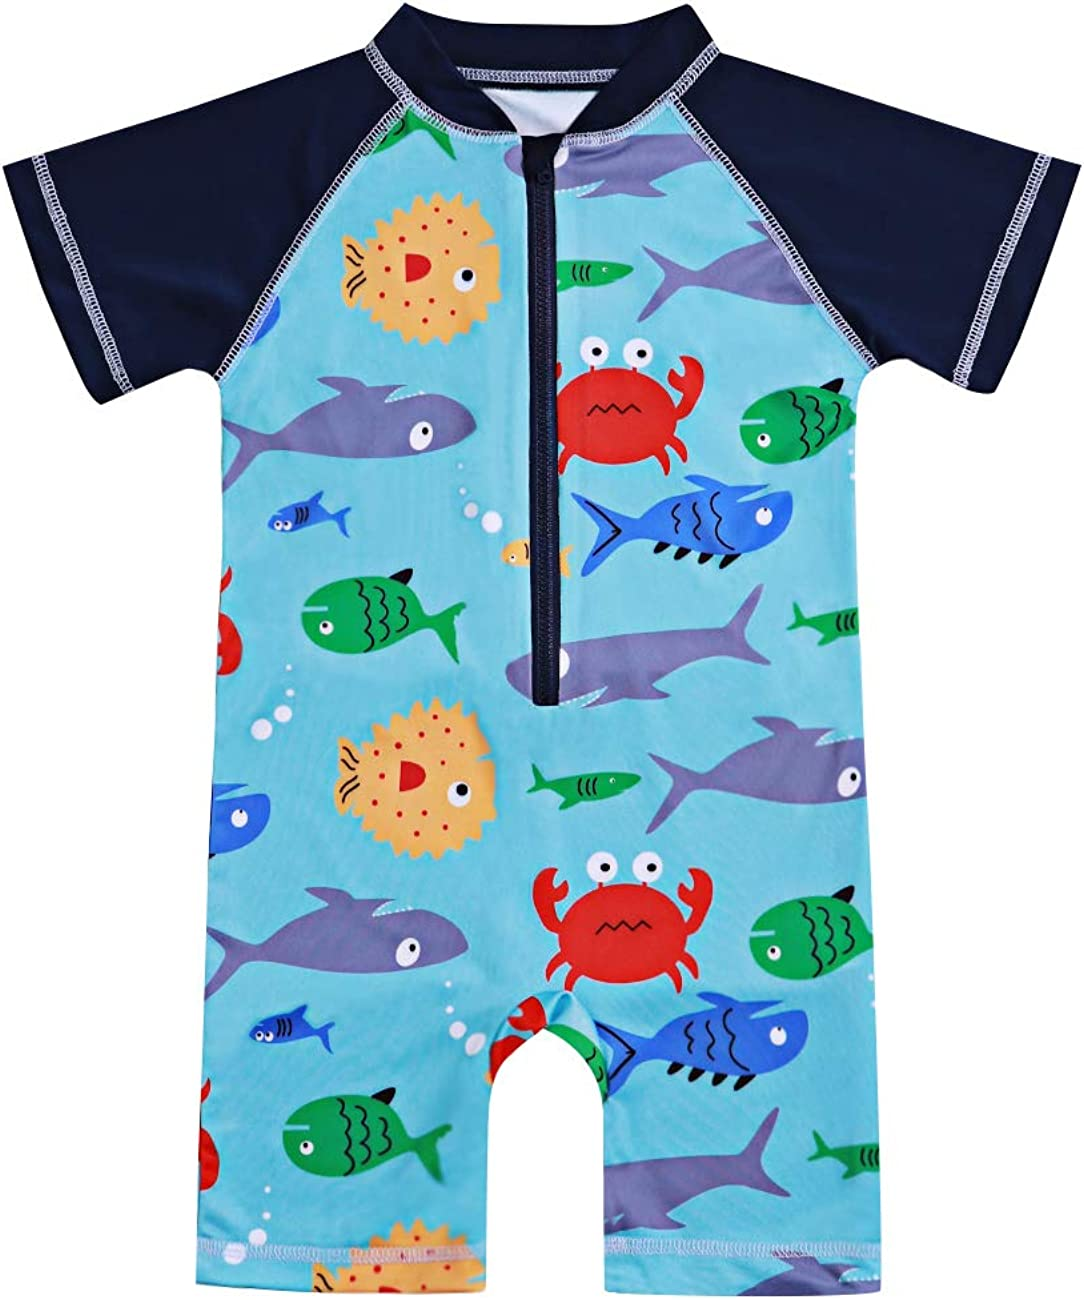 Toddler Kids Baby Boy All stores are sold Swimsuit Short Shark Suit P Sale special price Sleeve Bathing